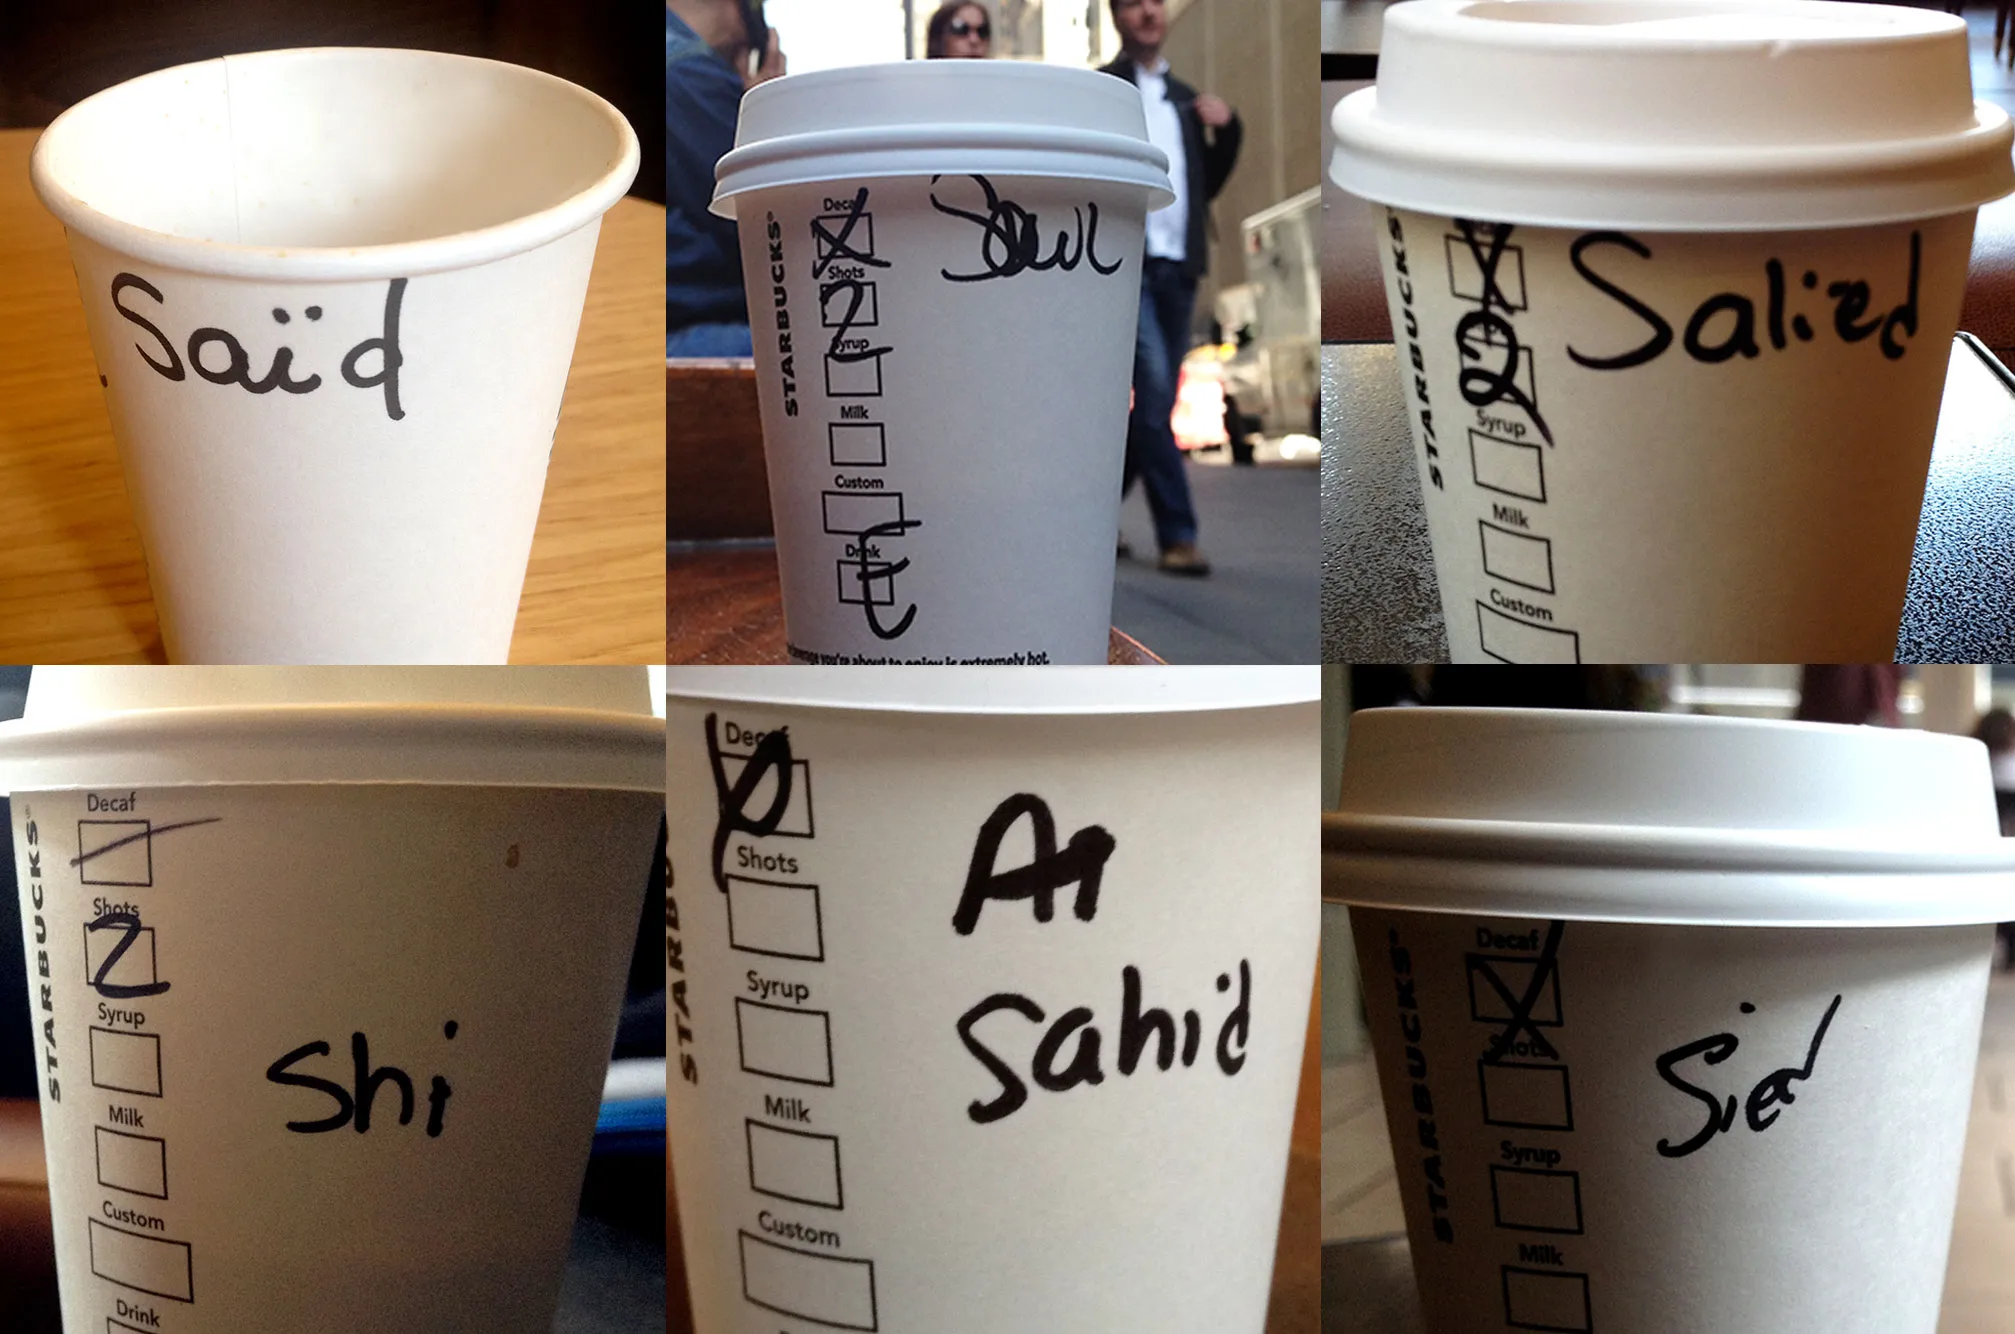 Examples of names written wrongly on Starbucks cups.